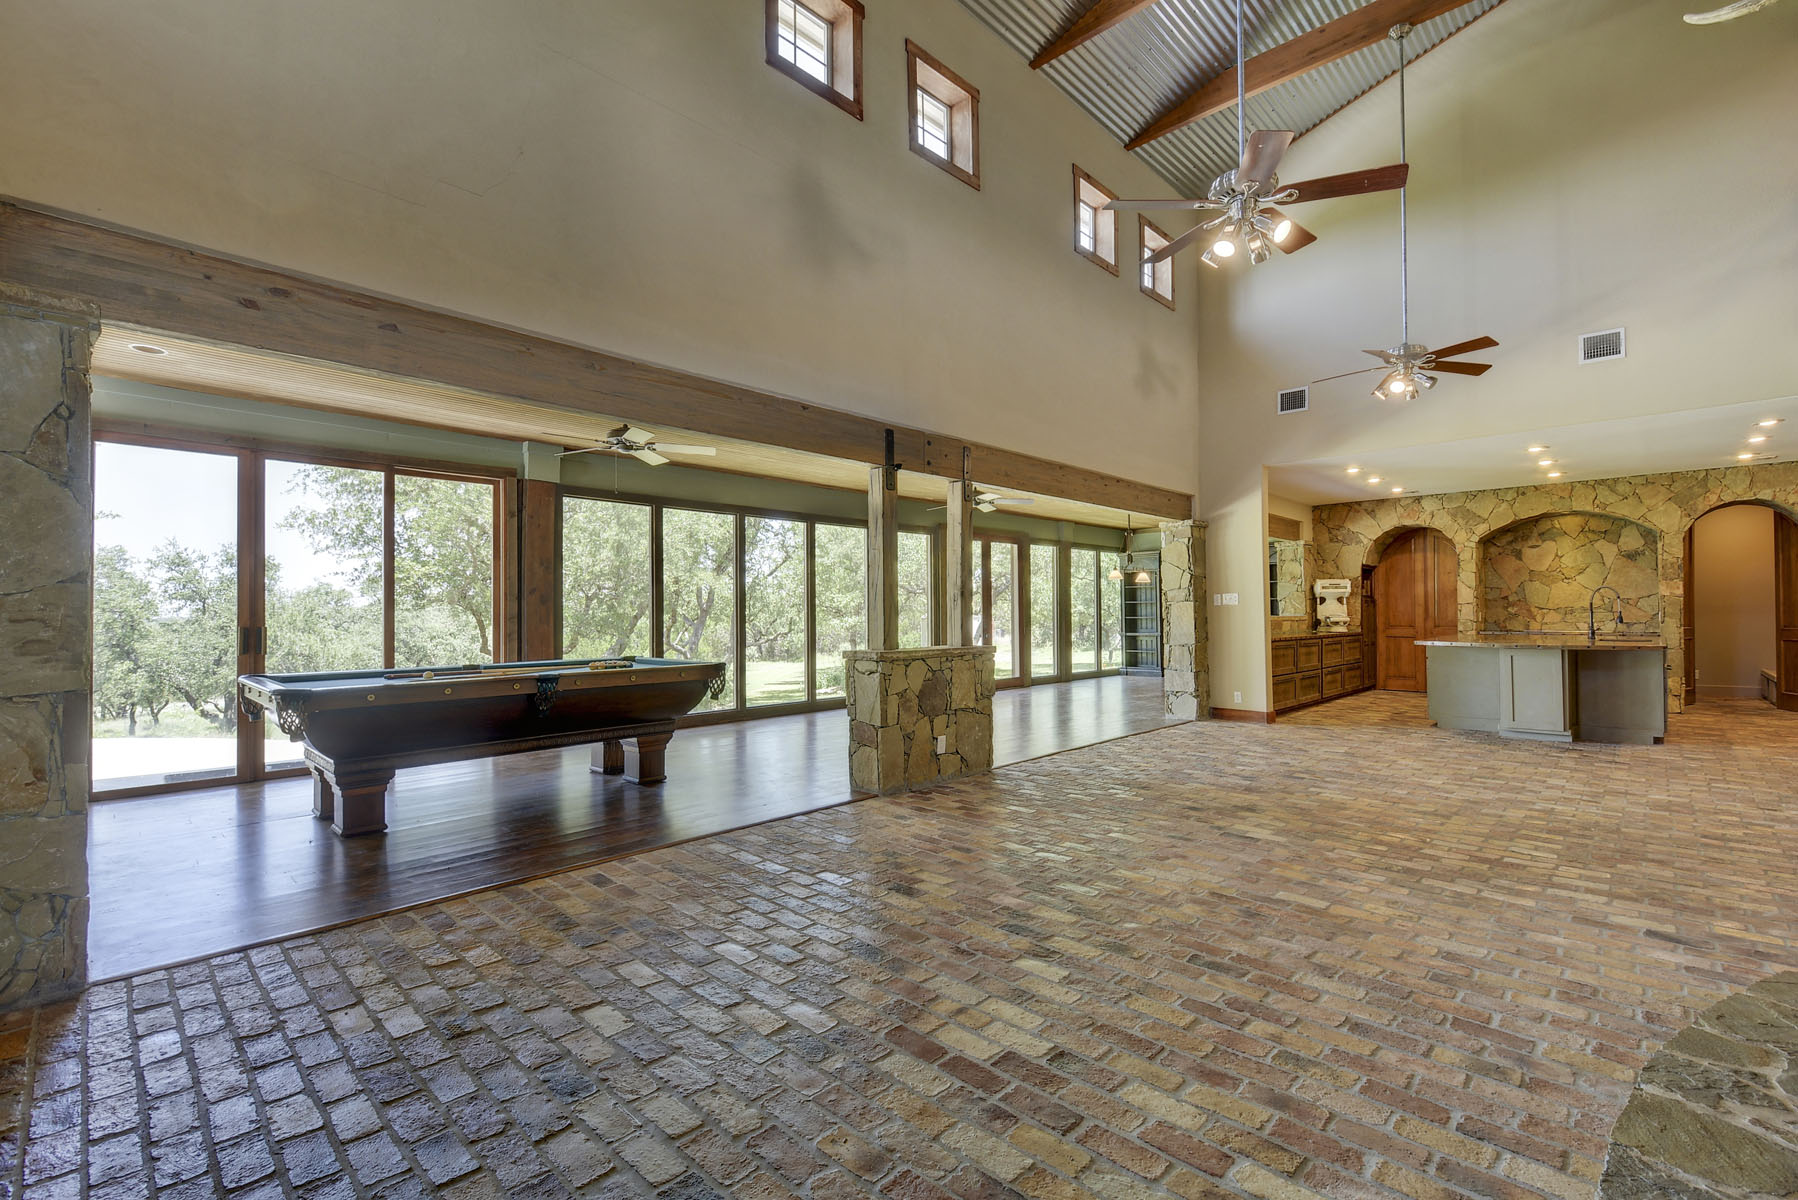 Additional photo for property listing at Panoramic Views of the Texas Hill Country 140 Granite Ridge Dr Spicewood, Texas 78669 Estados Unidos